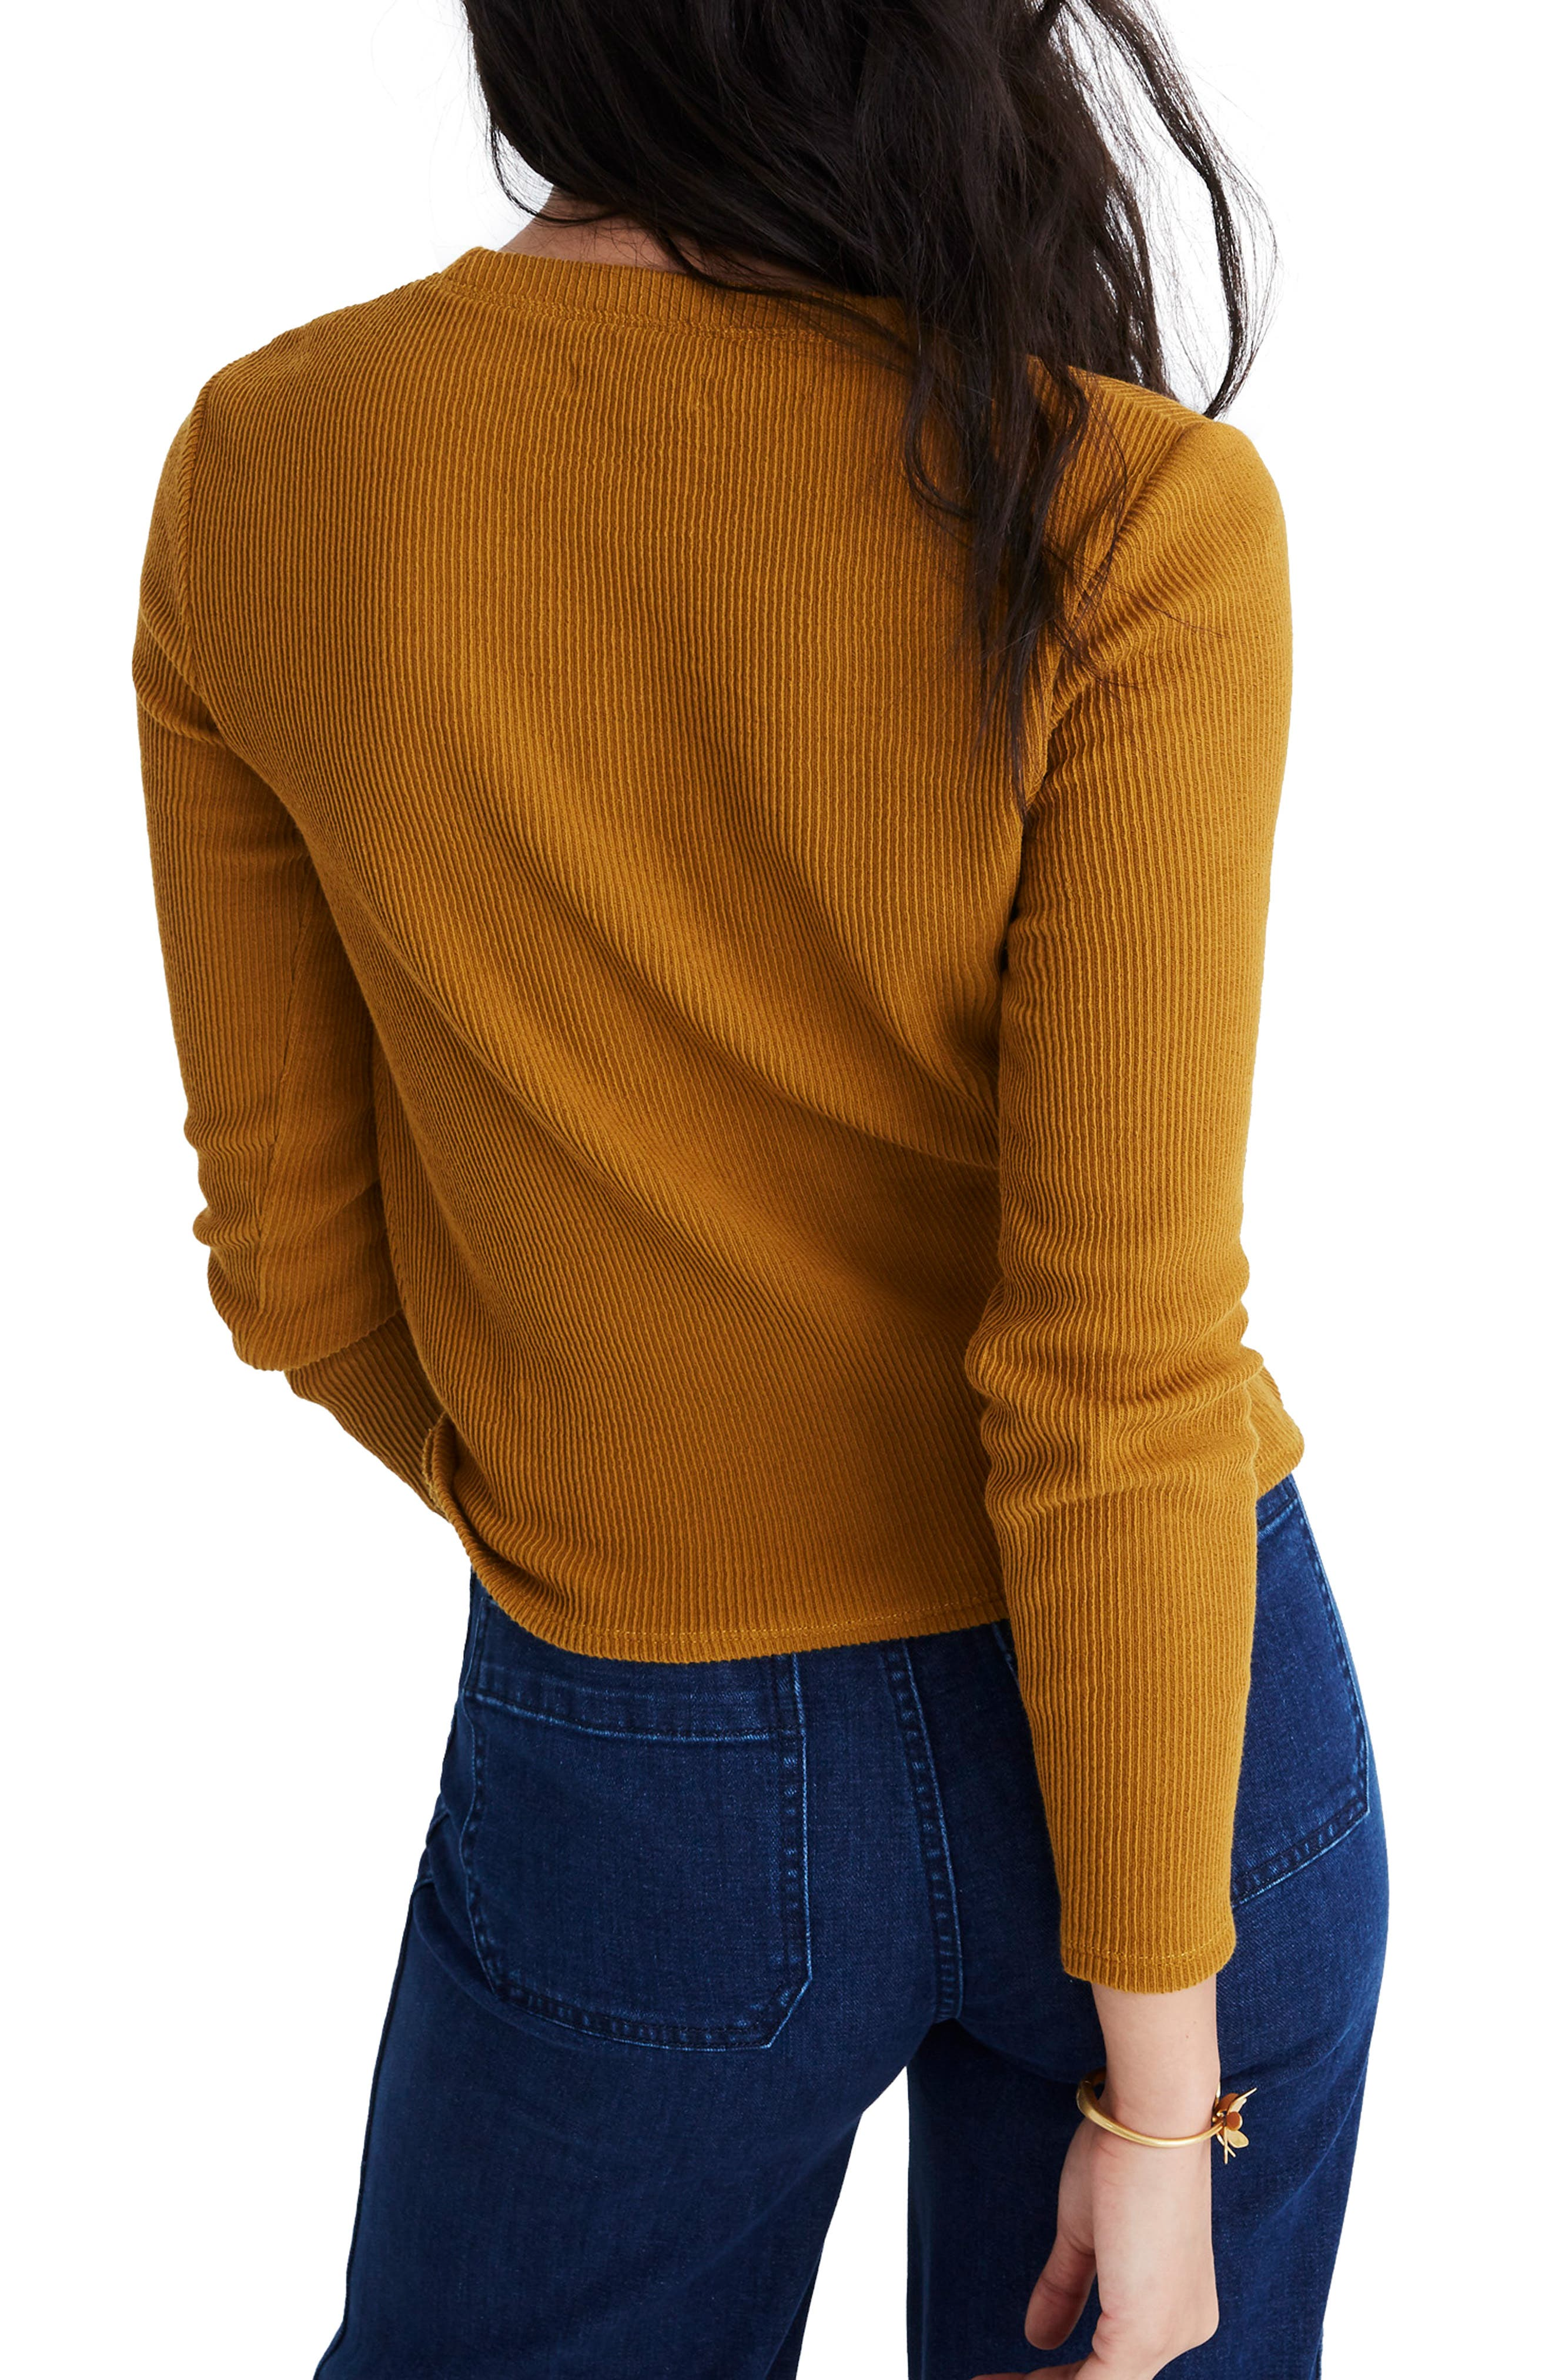 MADEWELL,                             Texture & Thread Front Knot Jacquard Top,                             Alternate thumbnail 2, color,                             EGYPTIAN GOLD